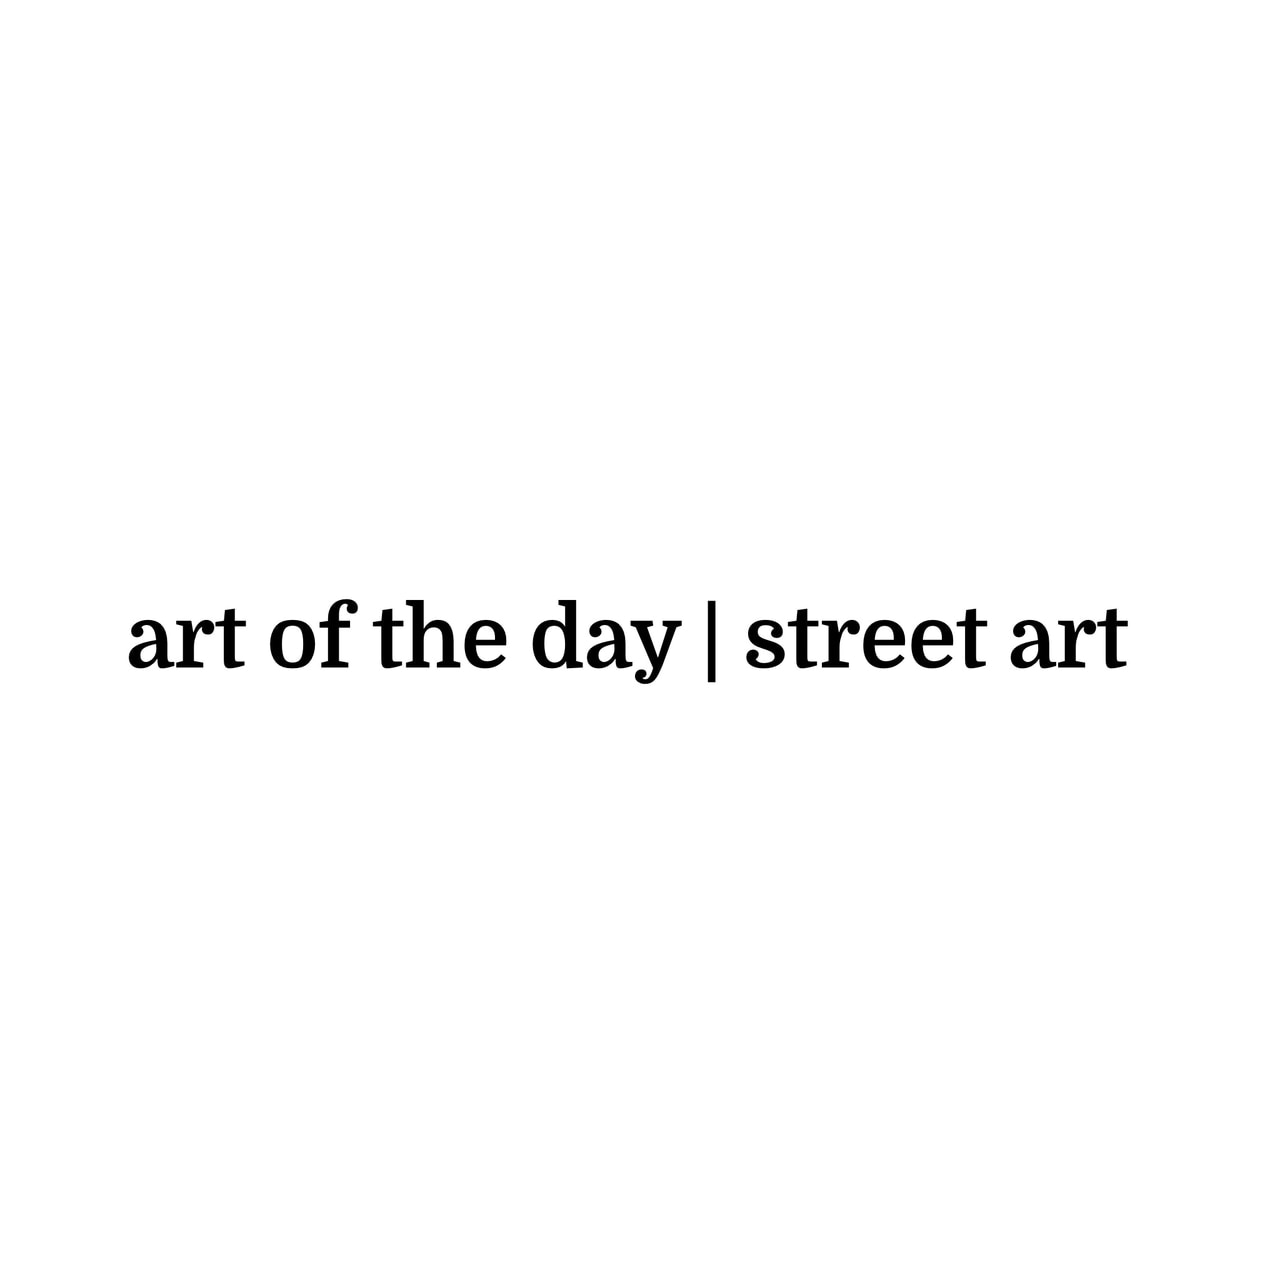 art, articles, and text image